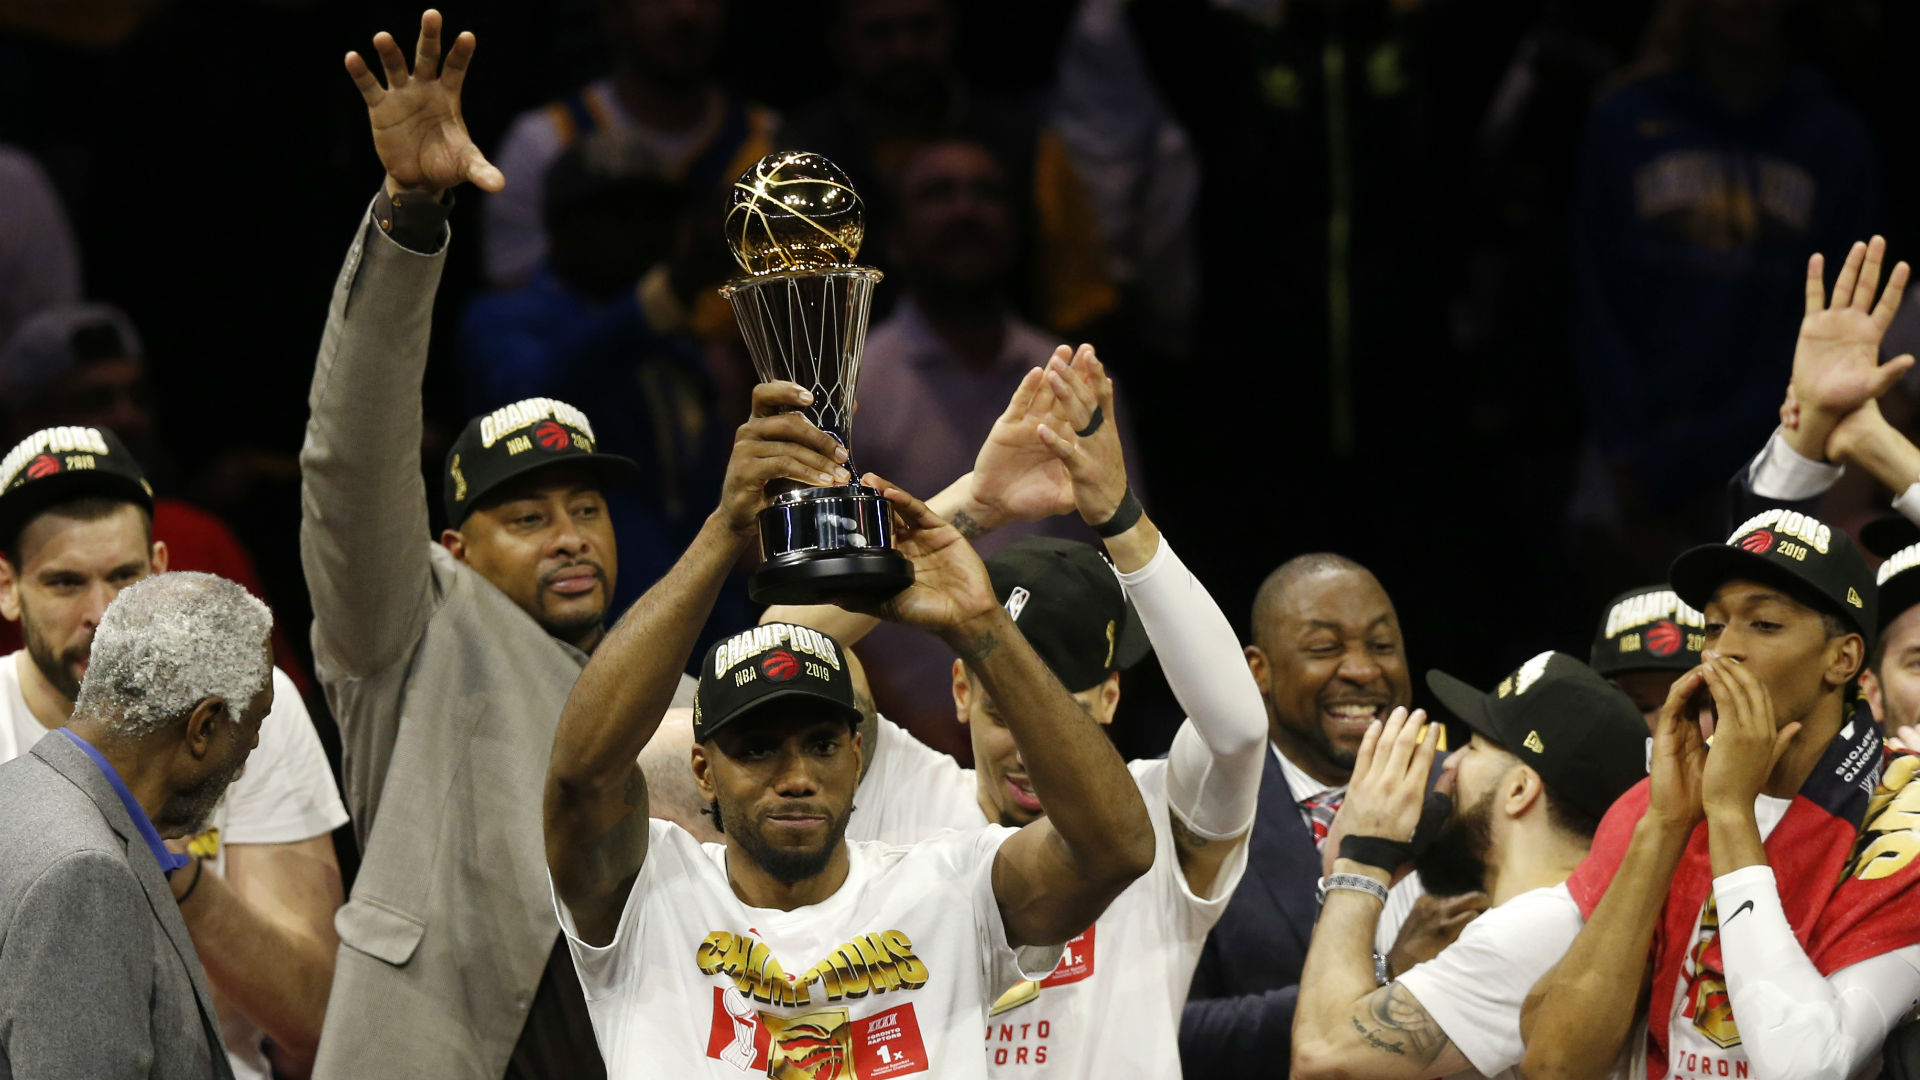 The Toronto Raptors will give Kawhi Leonard his championship ring on Wednesday but the Los Angeles Clipper is expecting a mixed reception.